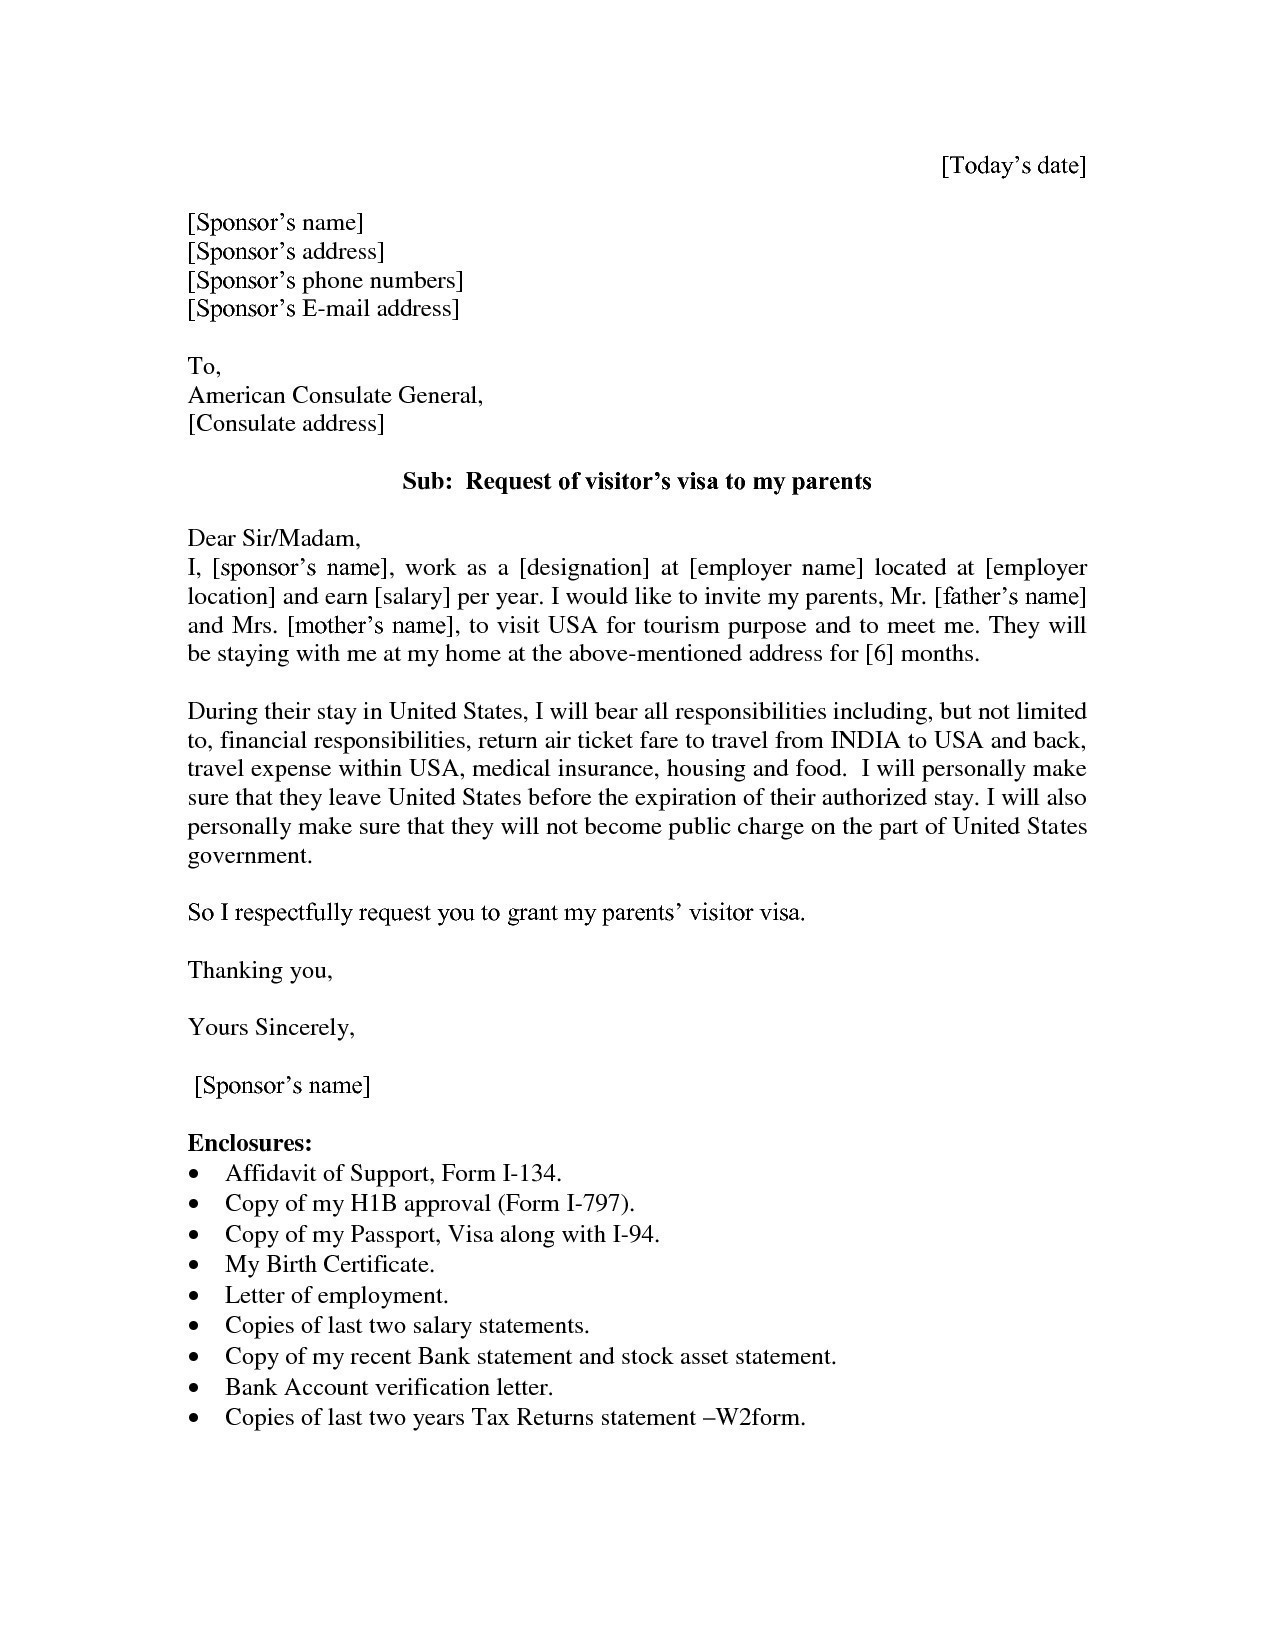 School Sponsorship Letter Template Samples | Letter Template Collection